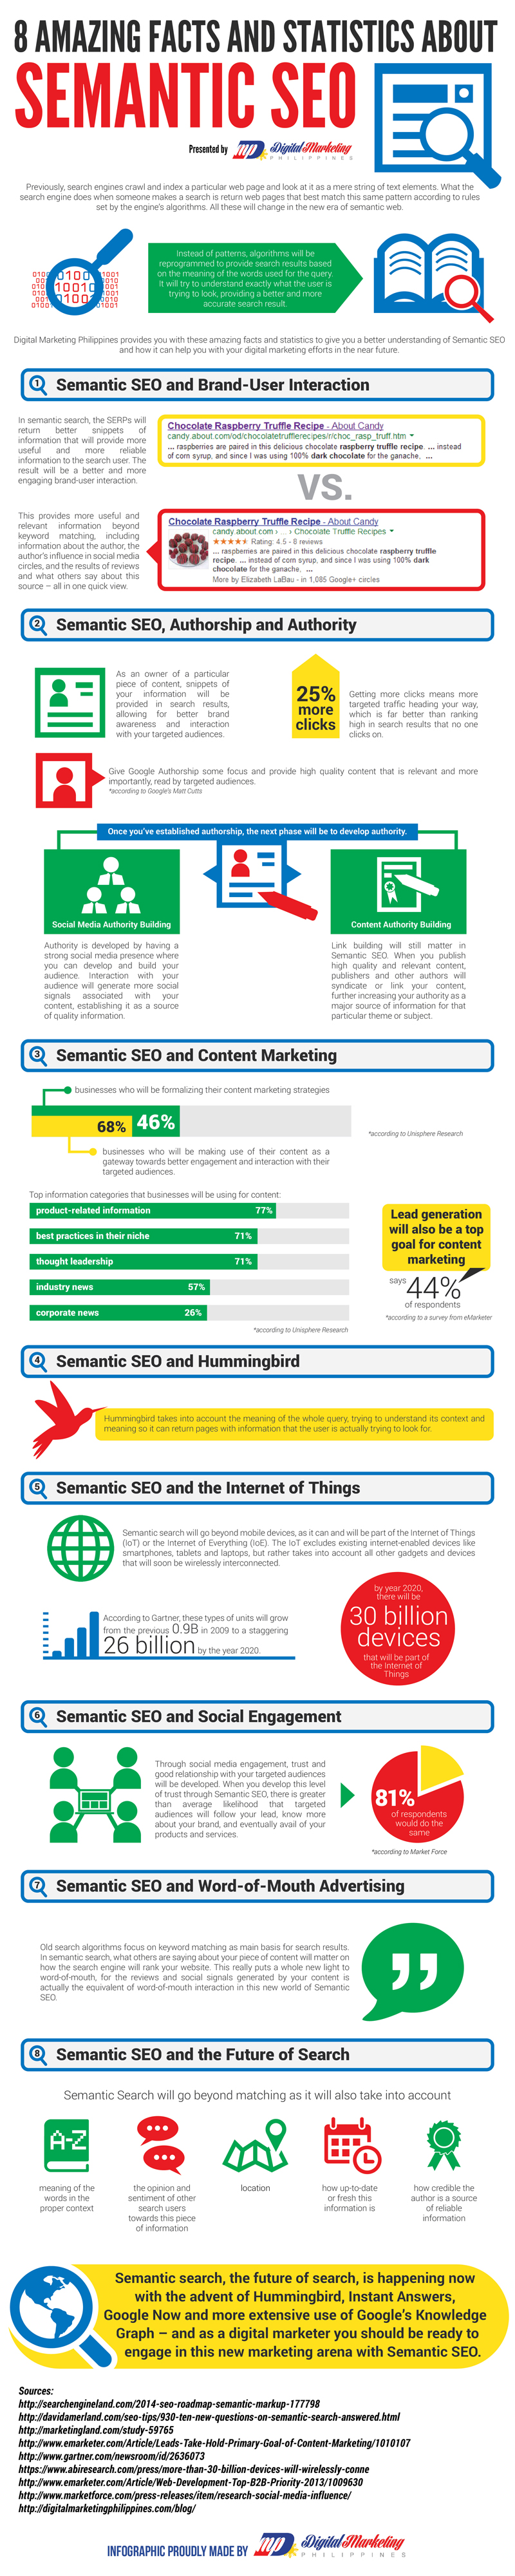 8 Amazing Facts and Statistics about Semantic SEO (Infographic) image 8 Amazing Facts and Statistics about Semantic SEO